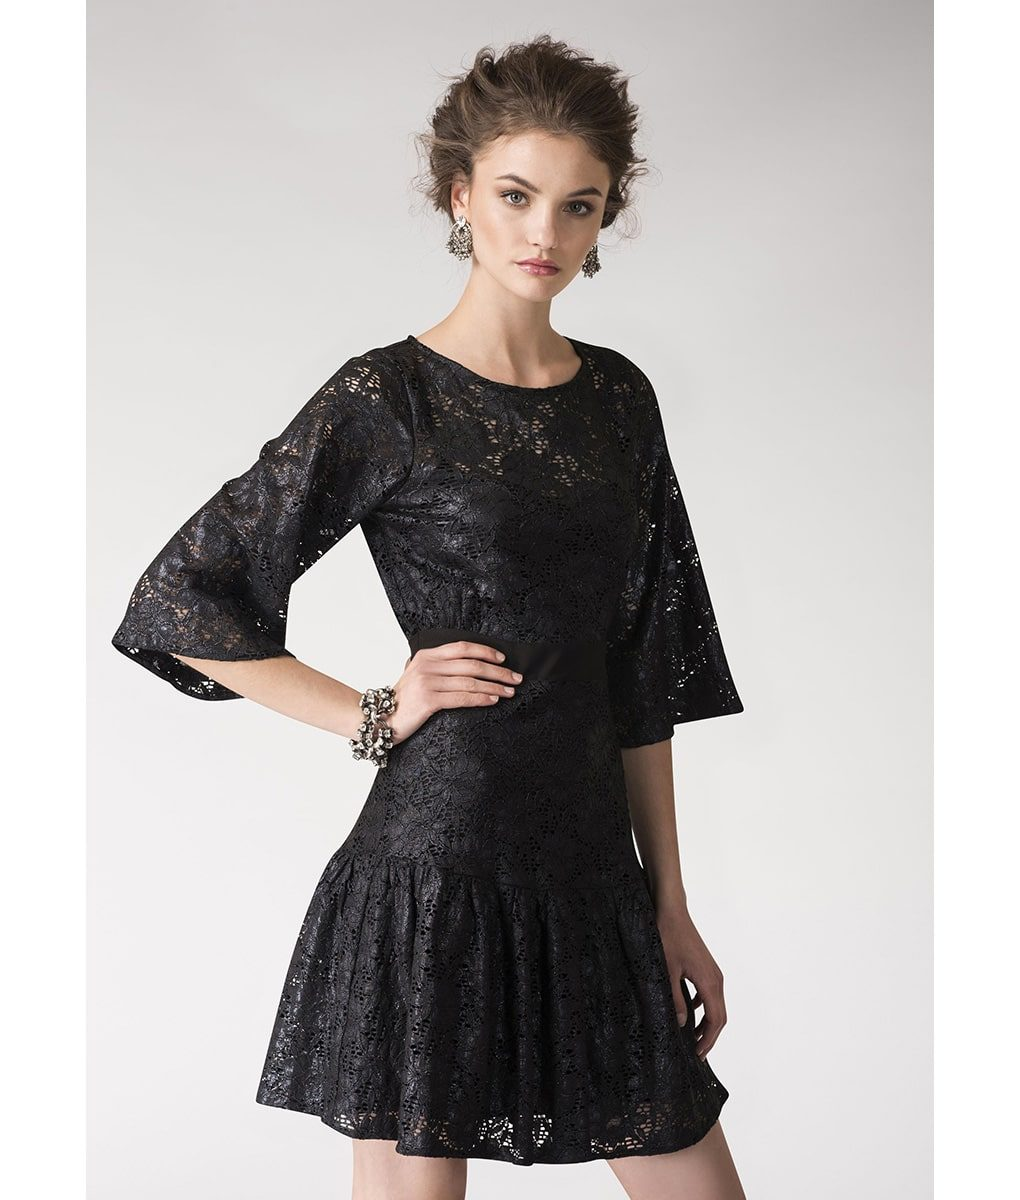 Alila-Metallic-Lace-Black-Dress-Closet-London